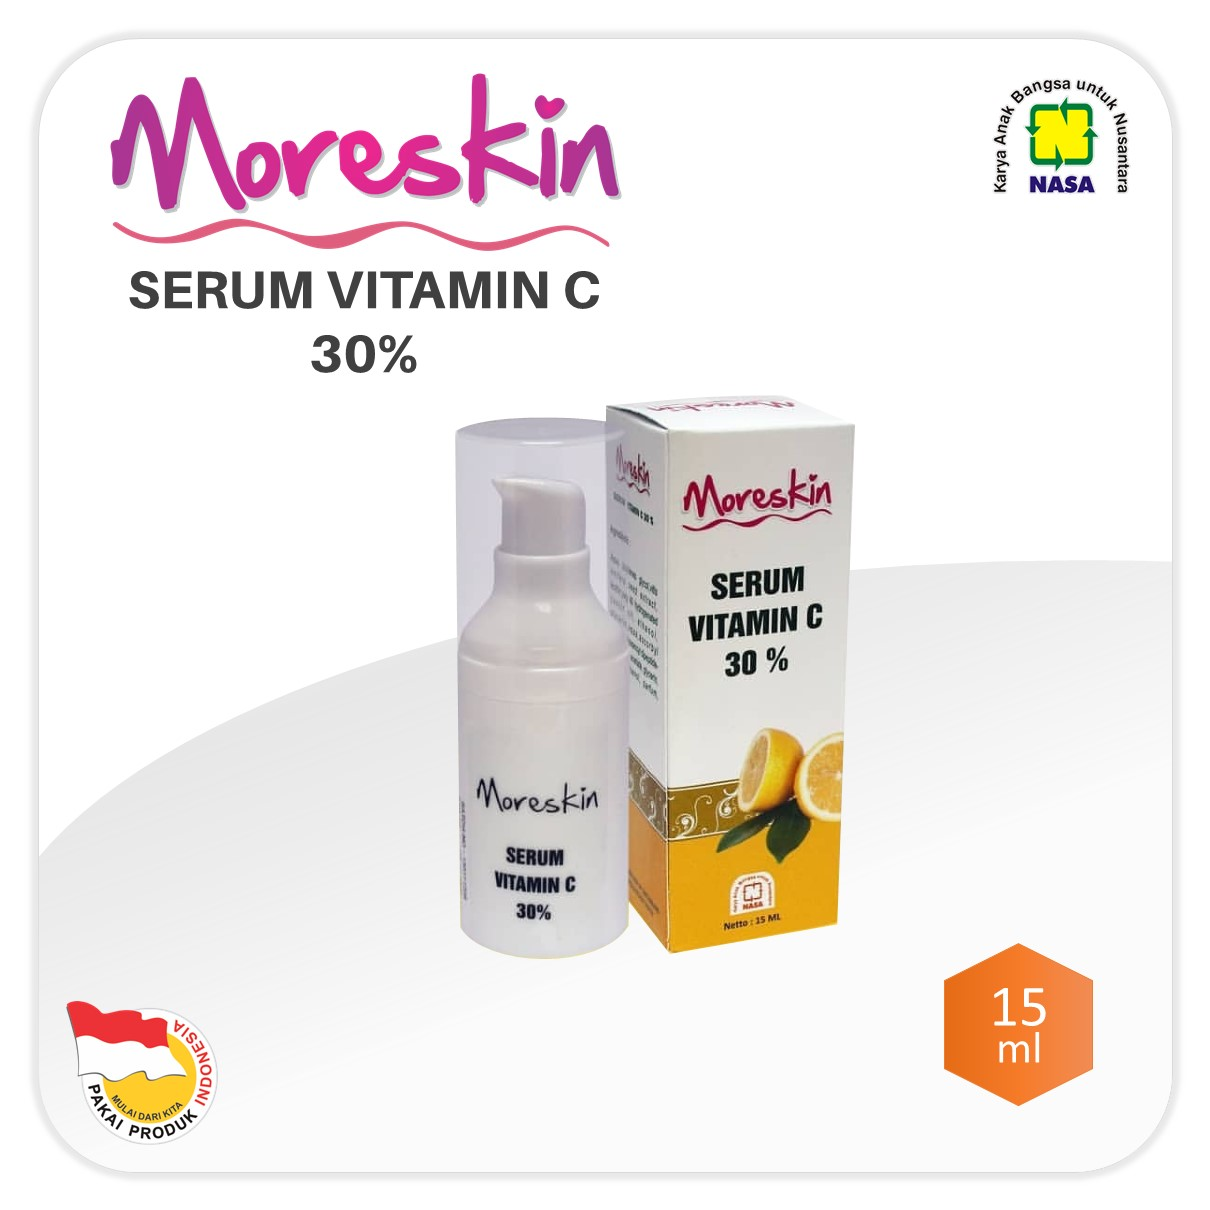 MORESKIN Serum Vitamin C 30%